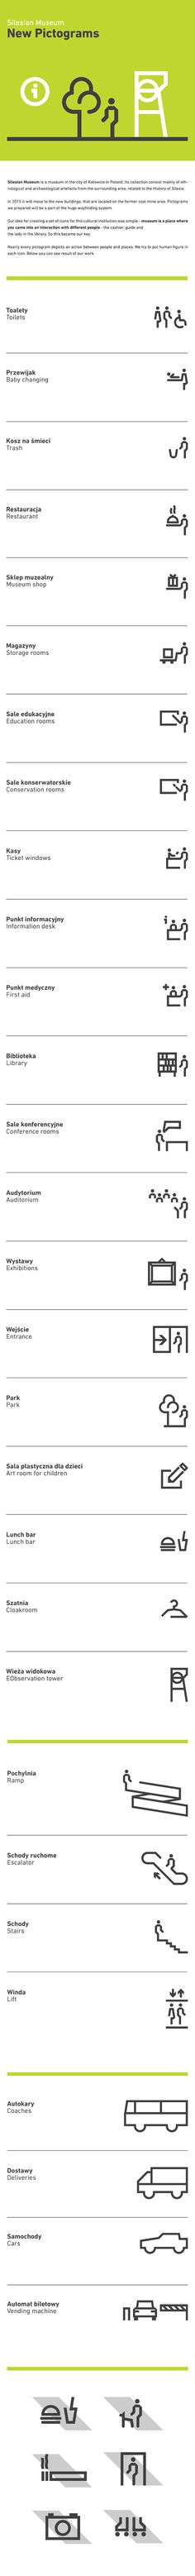 Silesian Museum - pictograms on Behance